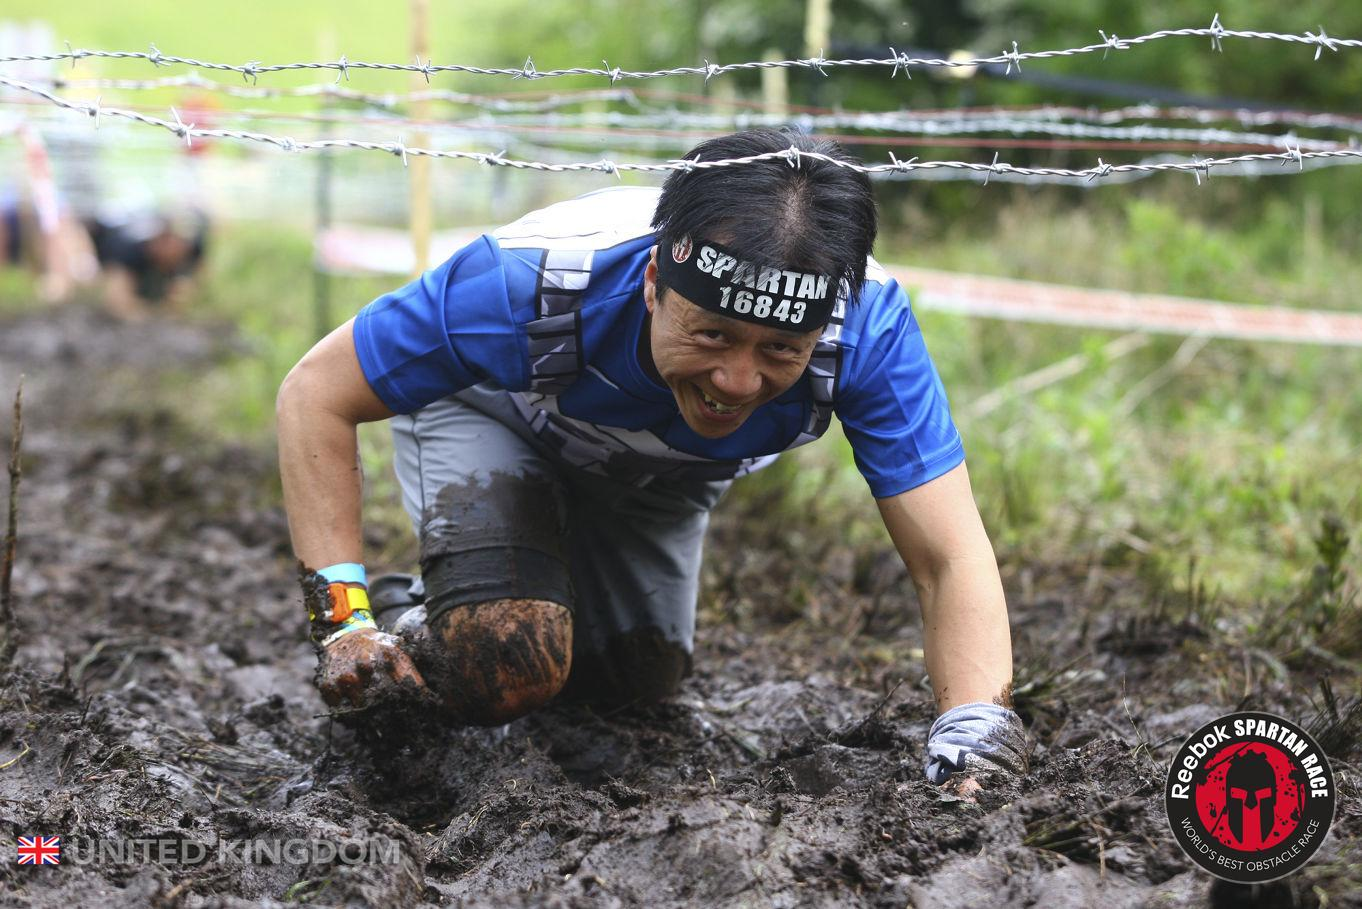 Spartan Super Midlands Crawl